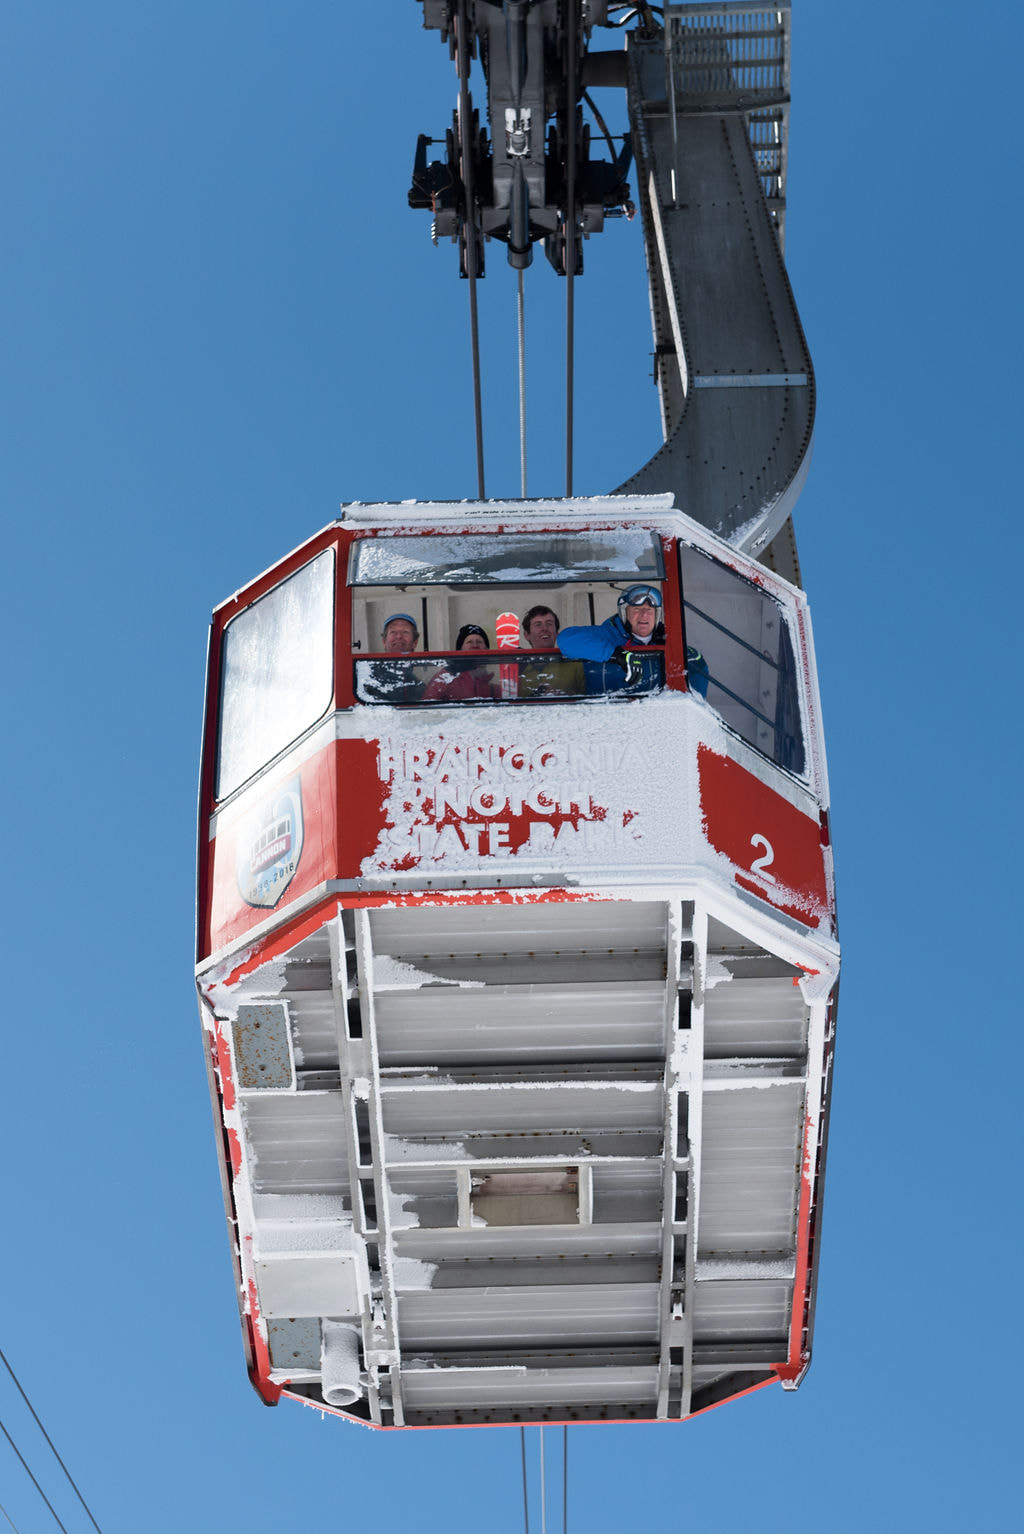 Cannon Mountain tram